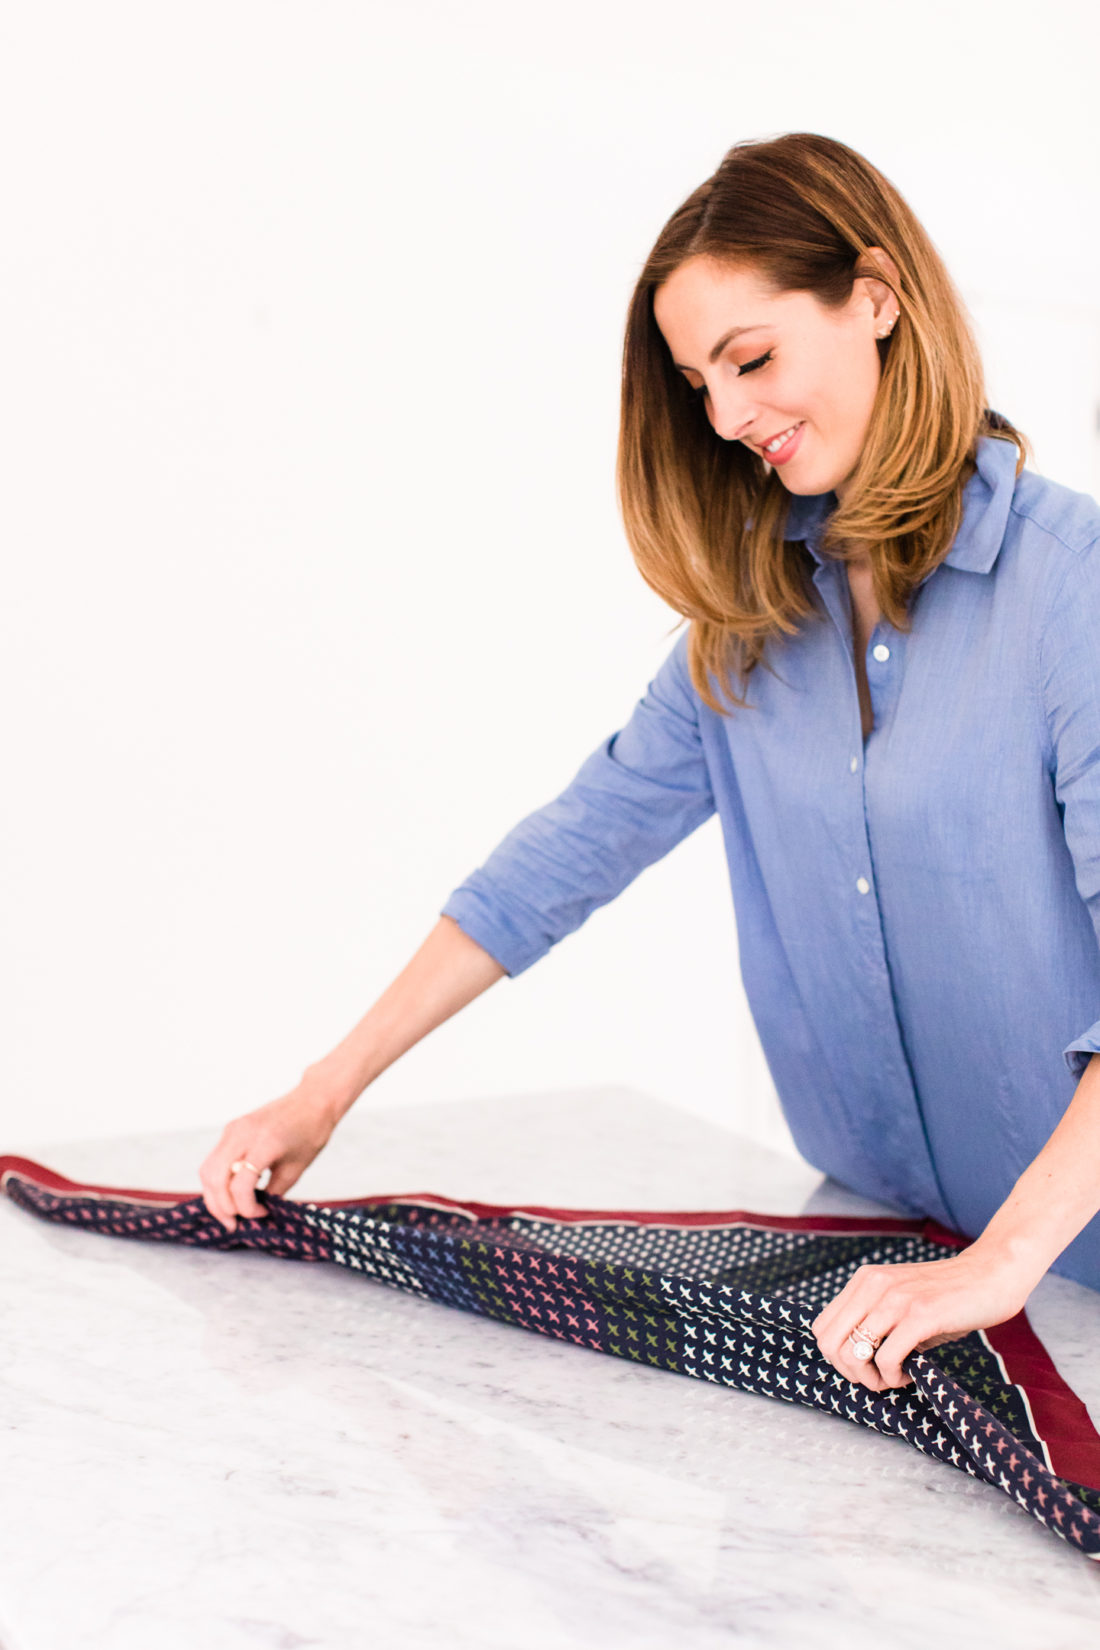 Eva Amurri Martino folds a patterned silk scarf to tie on her purse